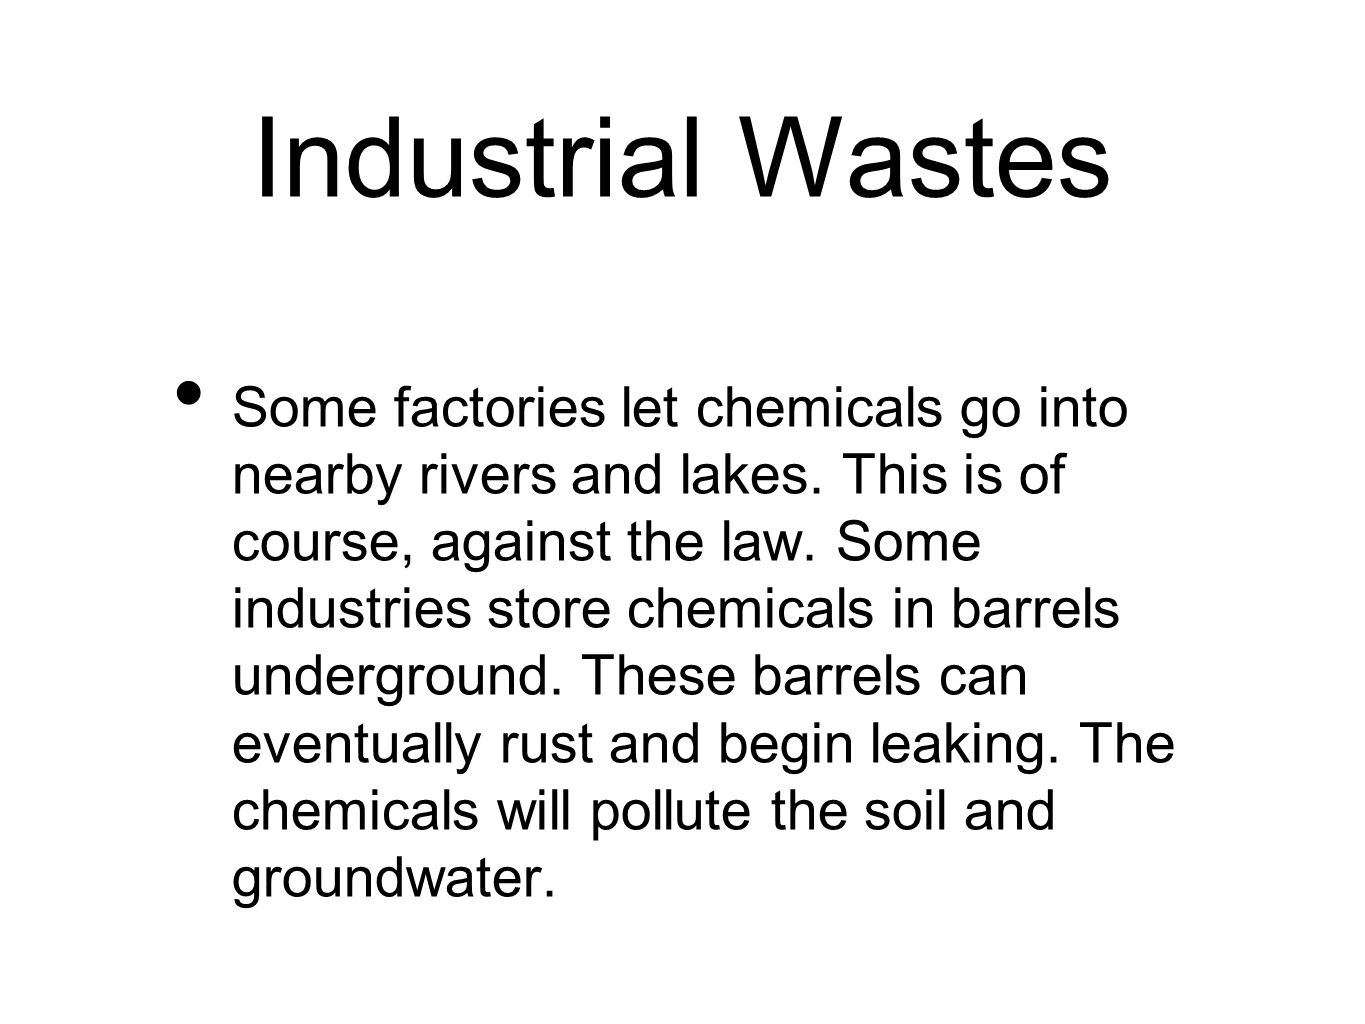 Industrial Wastes Some factories let chemicals go into nearby rivers and lakes.